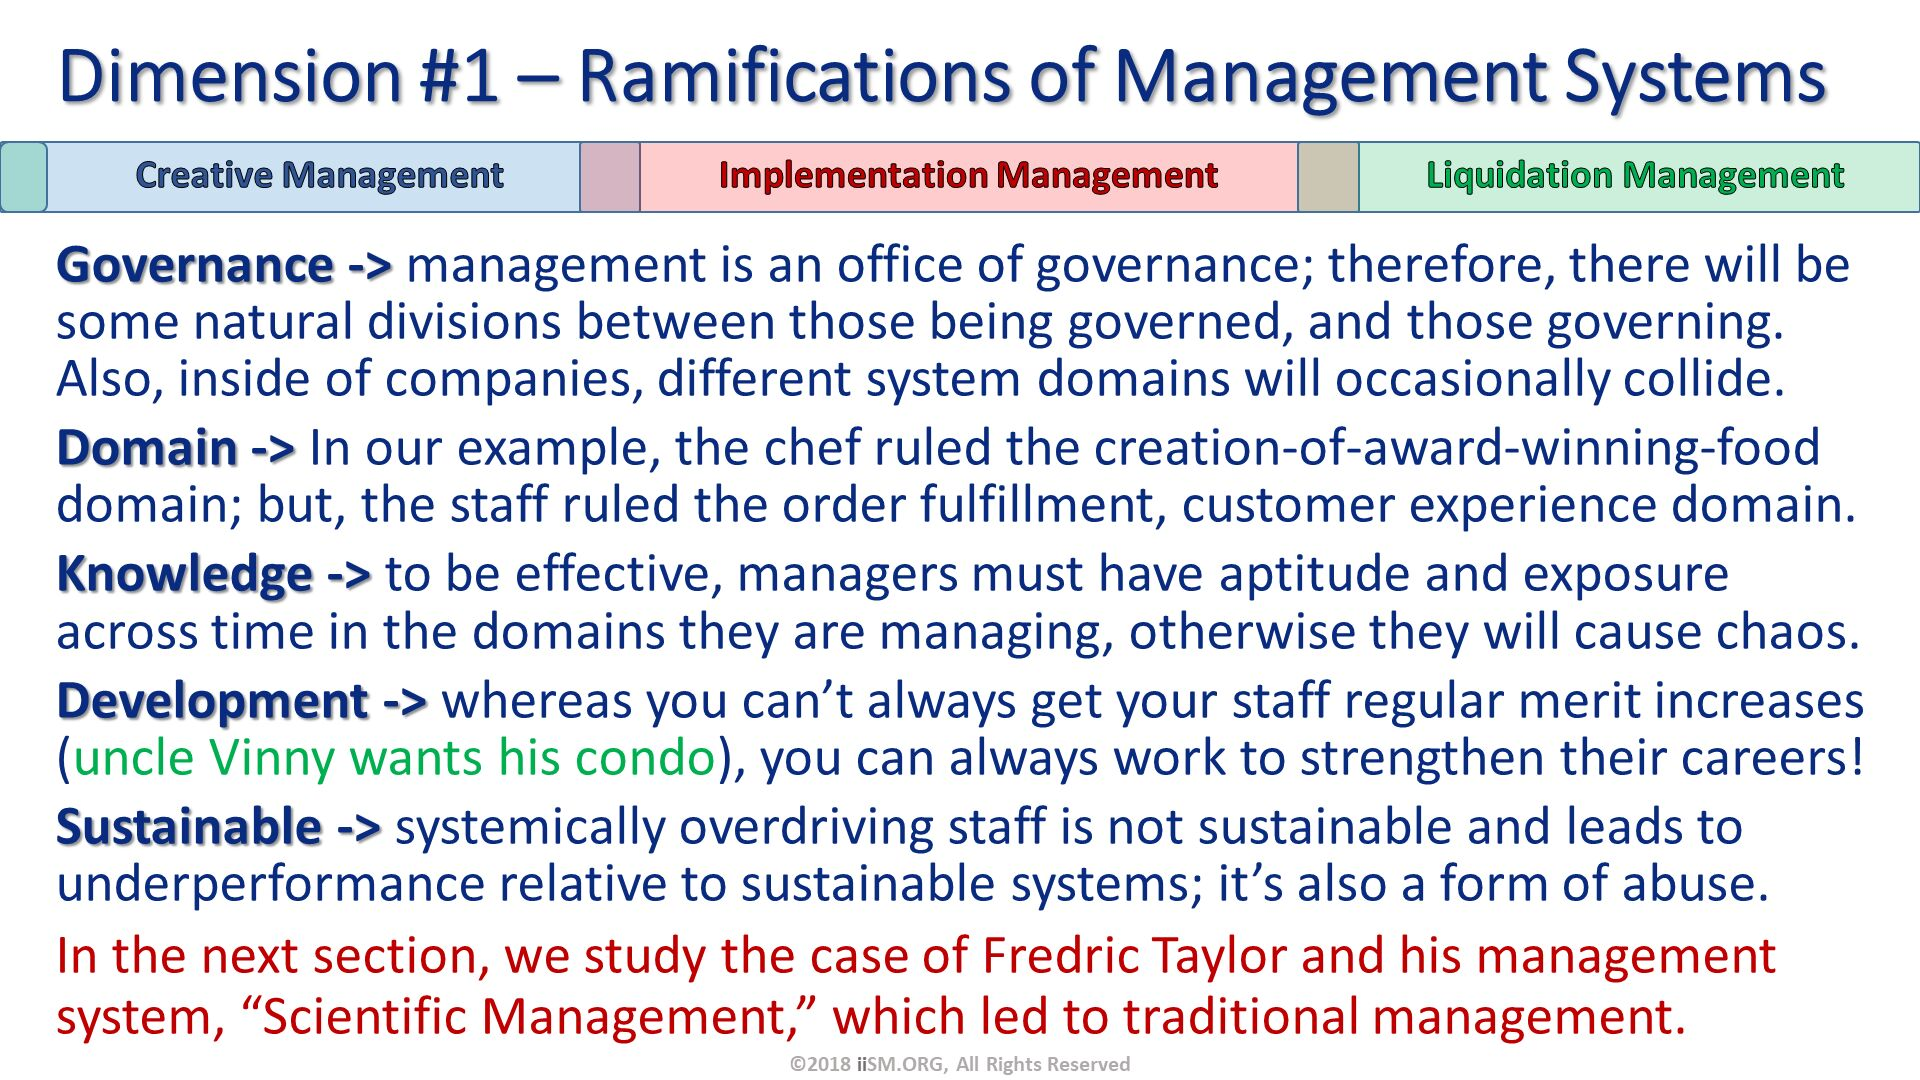 "Governance -> management is an office of governance; therefore, there will be some natural divisions between those being governed, and those governing.  Also, inside of companies, different system domains will occasionally collide. Domain -> In our example, the chef ruled the creation-of-award-winning-food domain; but, the staff ruled the order fulfillment, customer experience domain. Knowledge -> to be effective, managers must have aptitude and exposure across time in the domains they are managing, otherwise they will cause chaos. Development -> whereas you can't always get your staff regular merit increases (uncle Vinny wants his condo), you can always work to strengthen their careers! Sustainable -> systemically overdriving staff is not sustainable and leads to underperformance relative to sustainable systems; it's also a form of abuse.  In the next section, we study the case of Fredric Taylor and his management system, ""Scientific Management,"" which led to traditional management. Dimension #1 – Ramifications of Management Systems. ©2018 iiSM.ORG, All Rights Reserved."